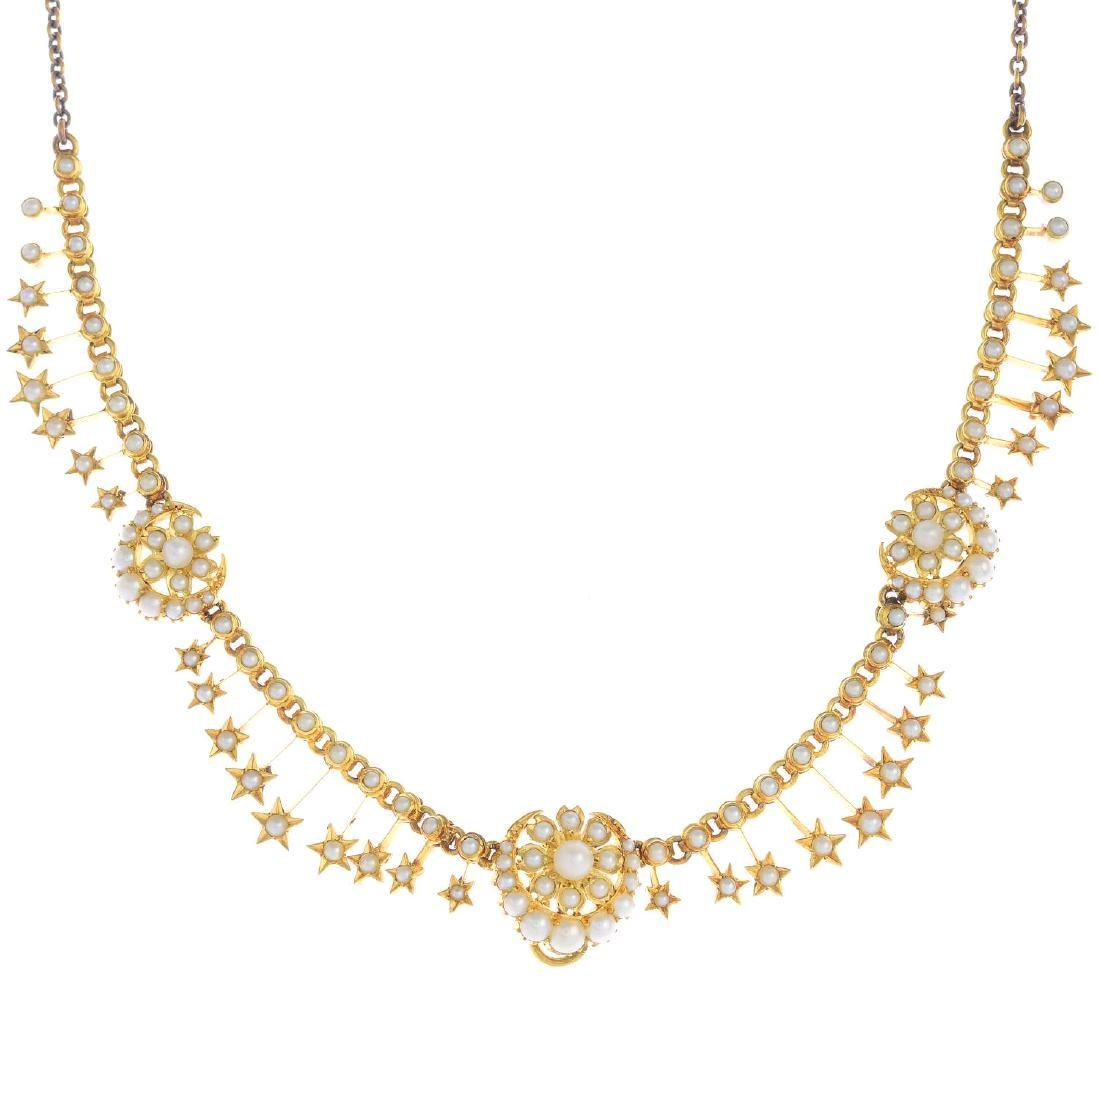 An early 20th century gold split and seed pearl